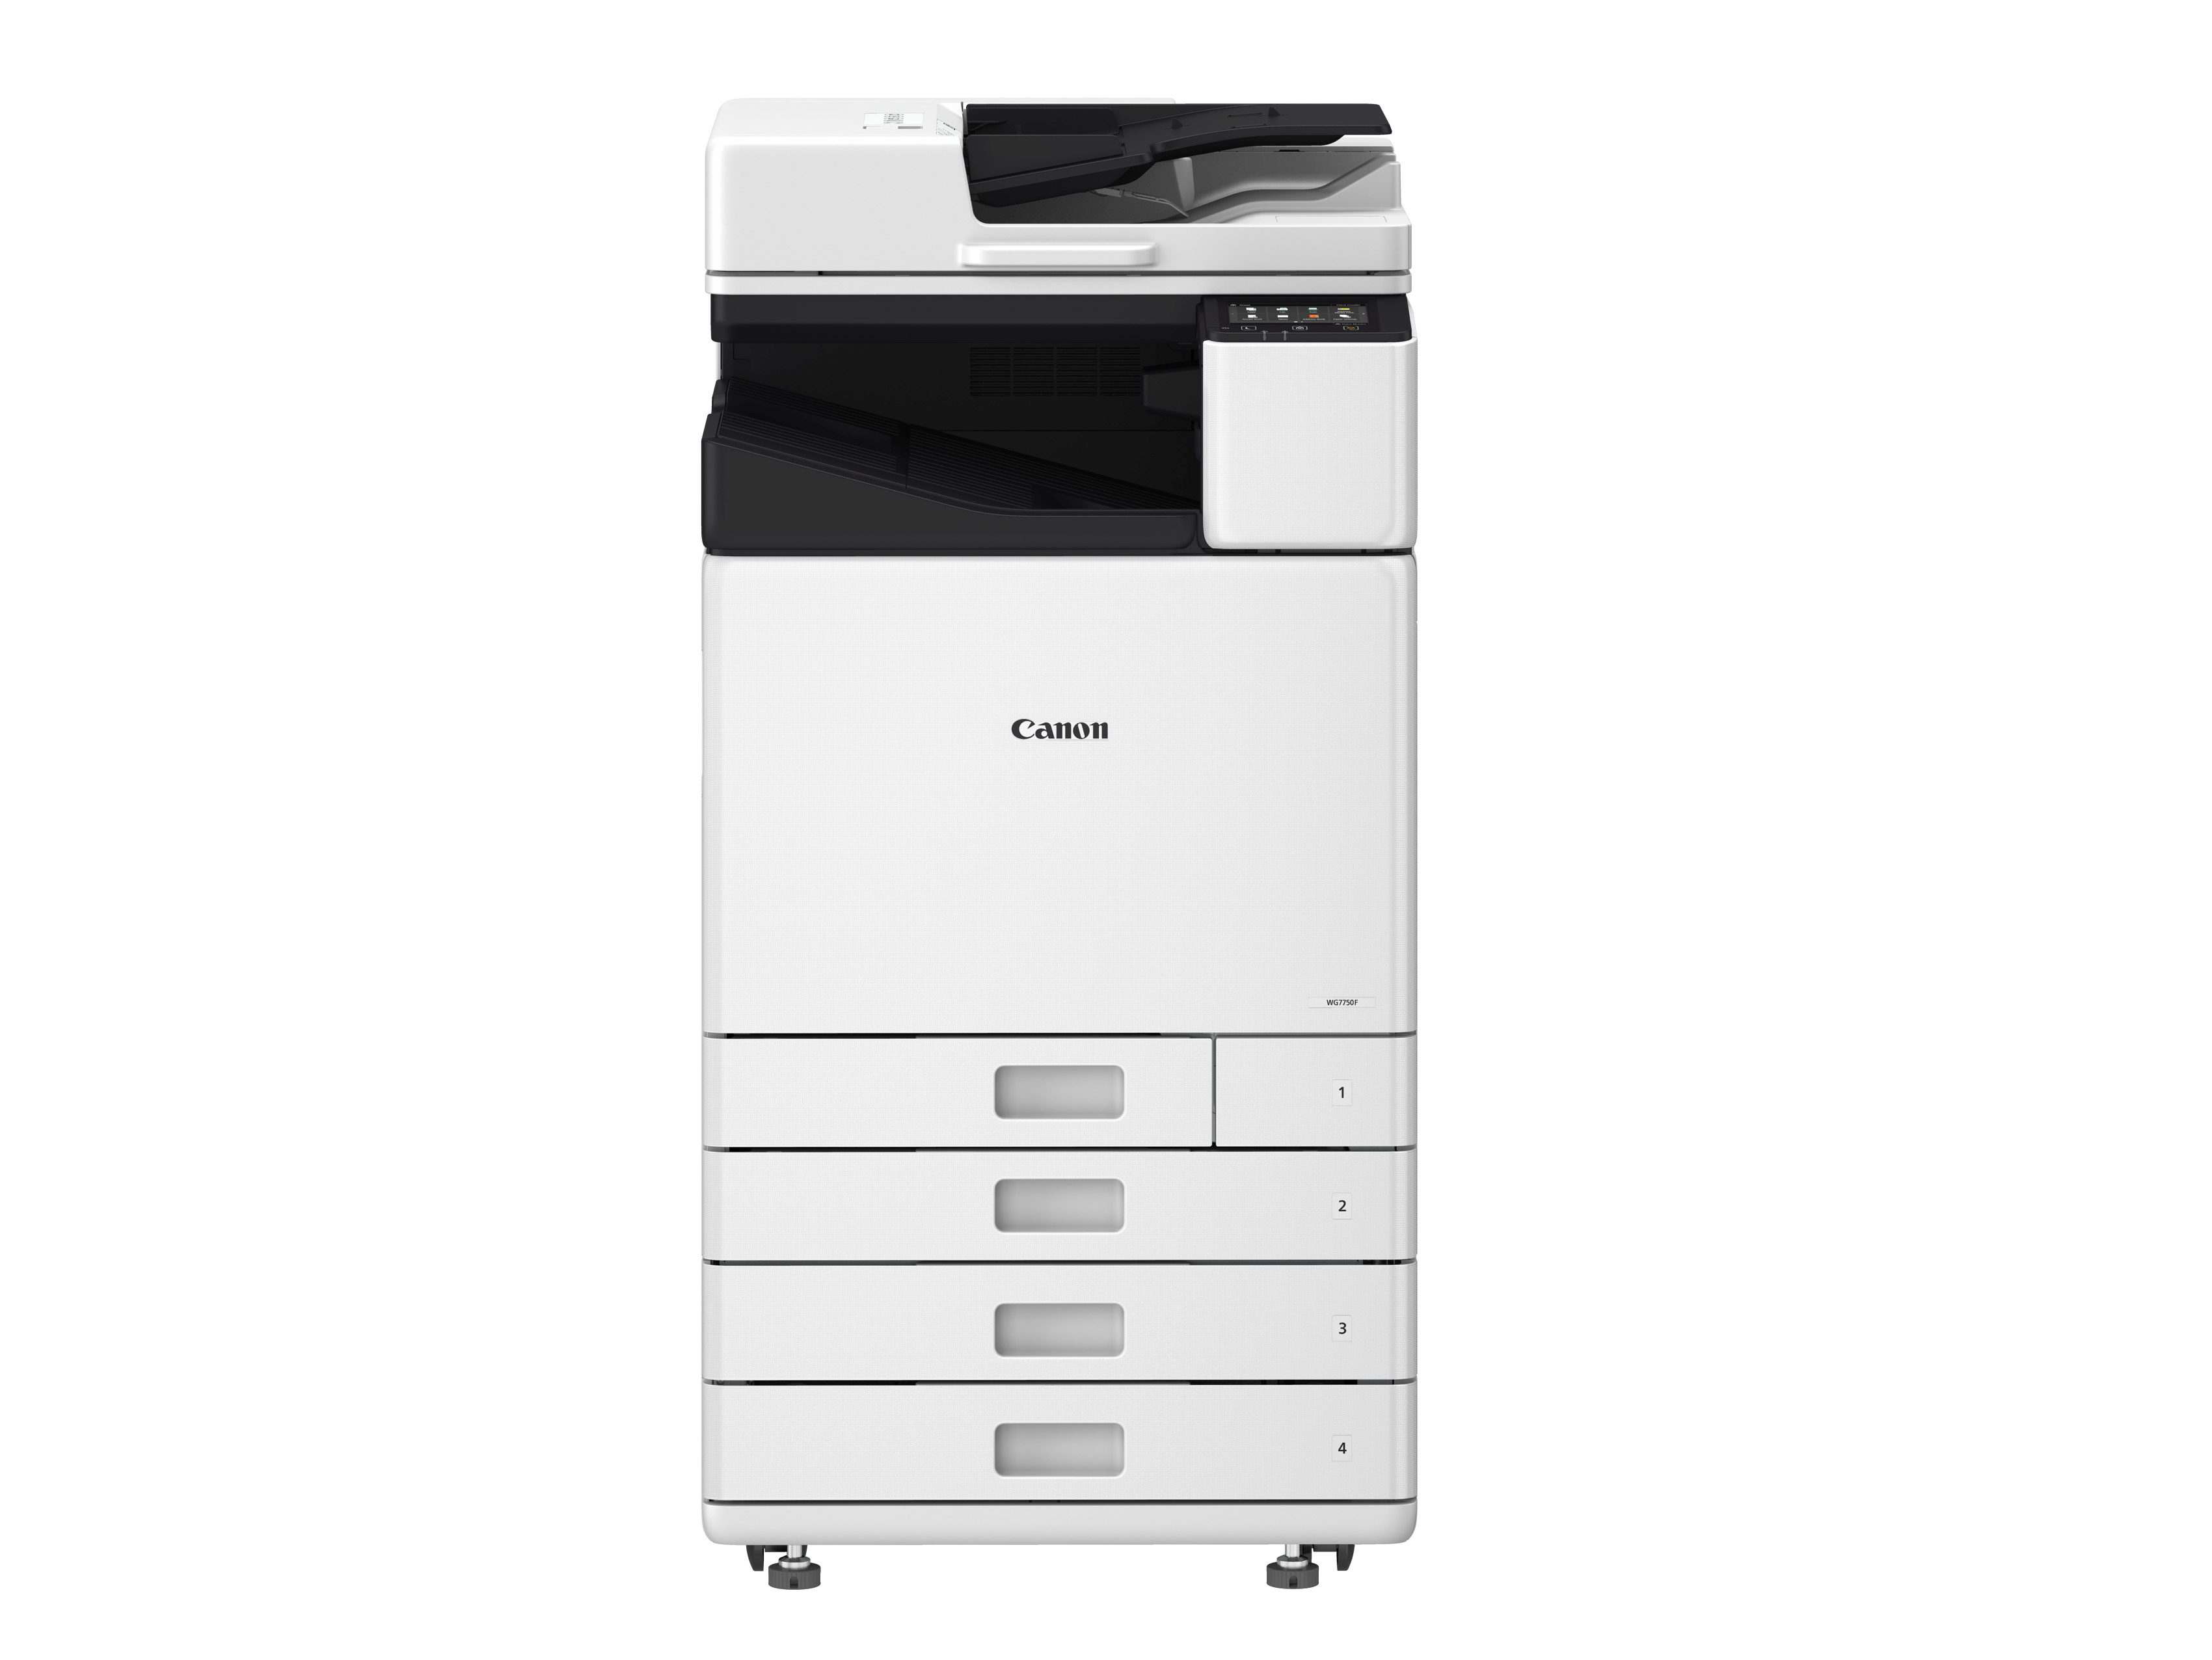 Canon Unveils its First A3 Enterprise Inkjet Business Printers to Boost Business Productivity